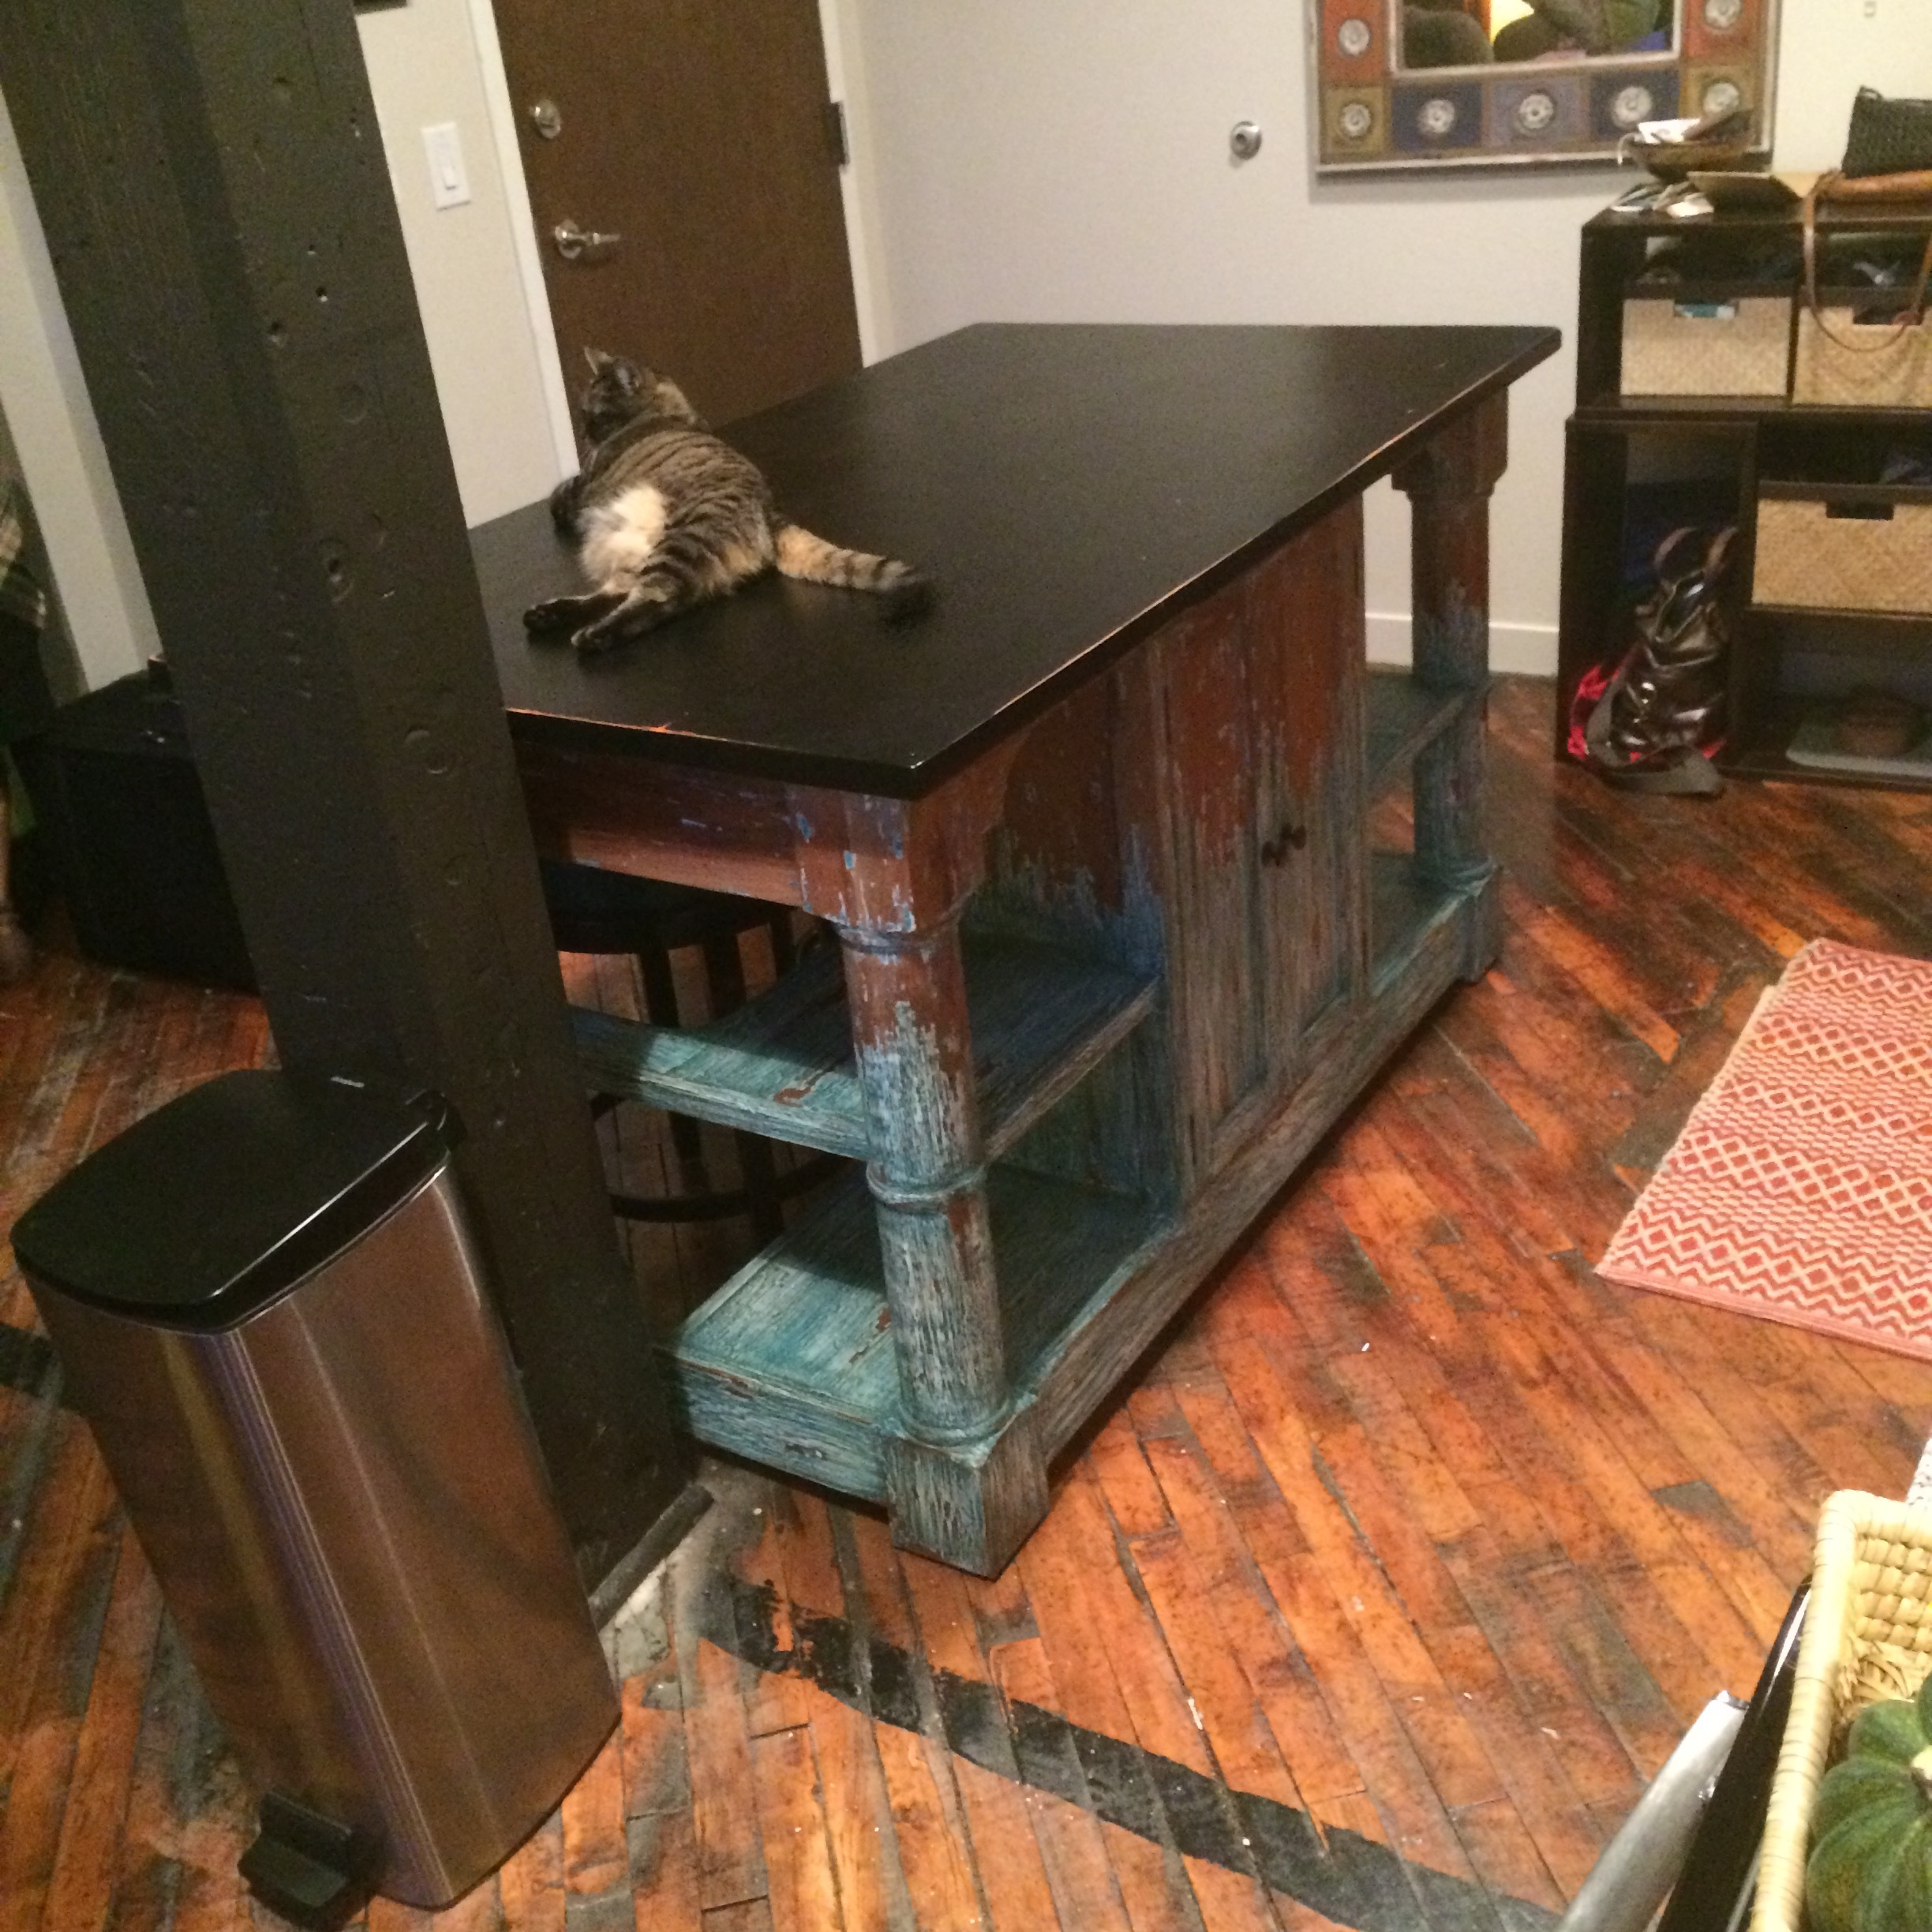 26266 Savannah Kitchen Island (Cat NOT included LOL)